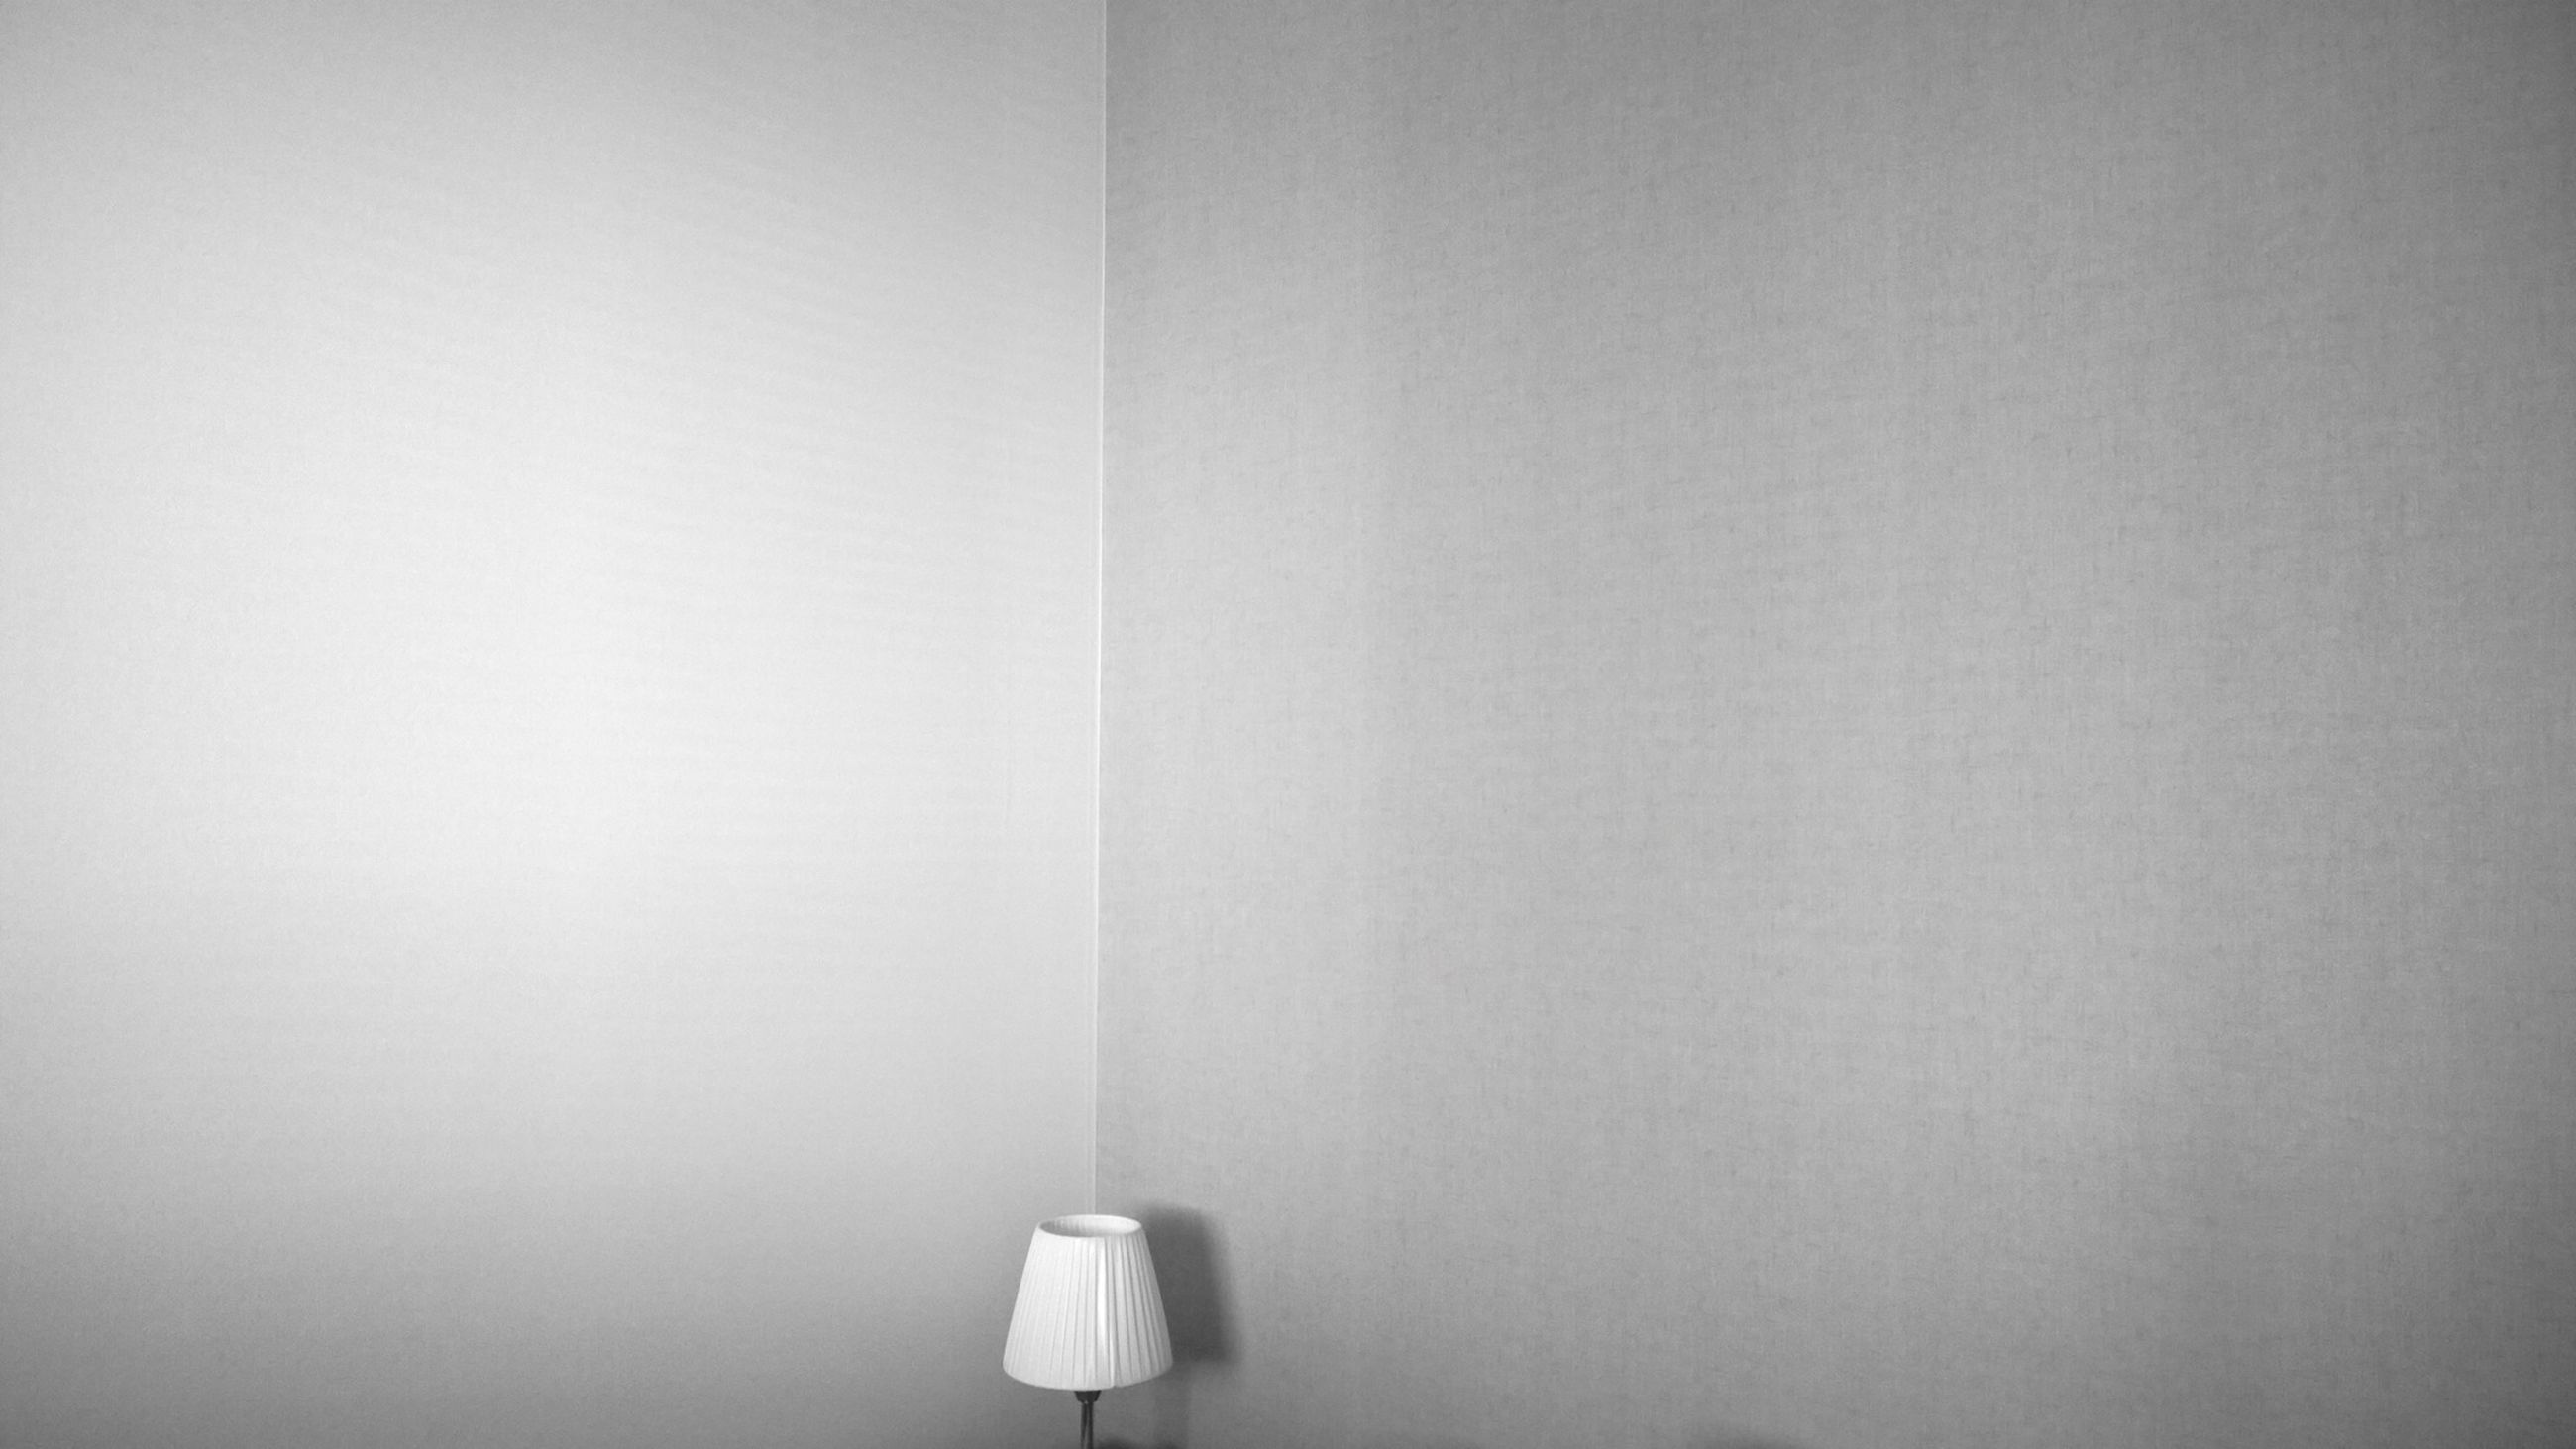 indoors, wall - building feature, copy space, home interior, wall, white color, still life, no people, white background, built structure, architecture, white, simplicity, studio shot, close-up, lighting equipment, curtain, window, domestic room, hanging